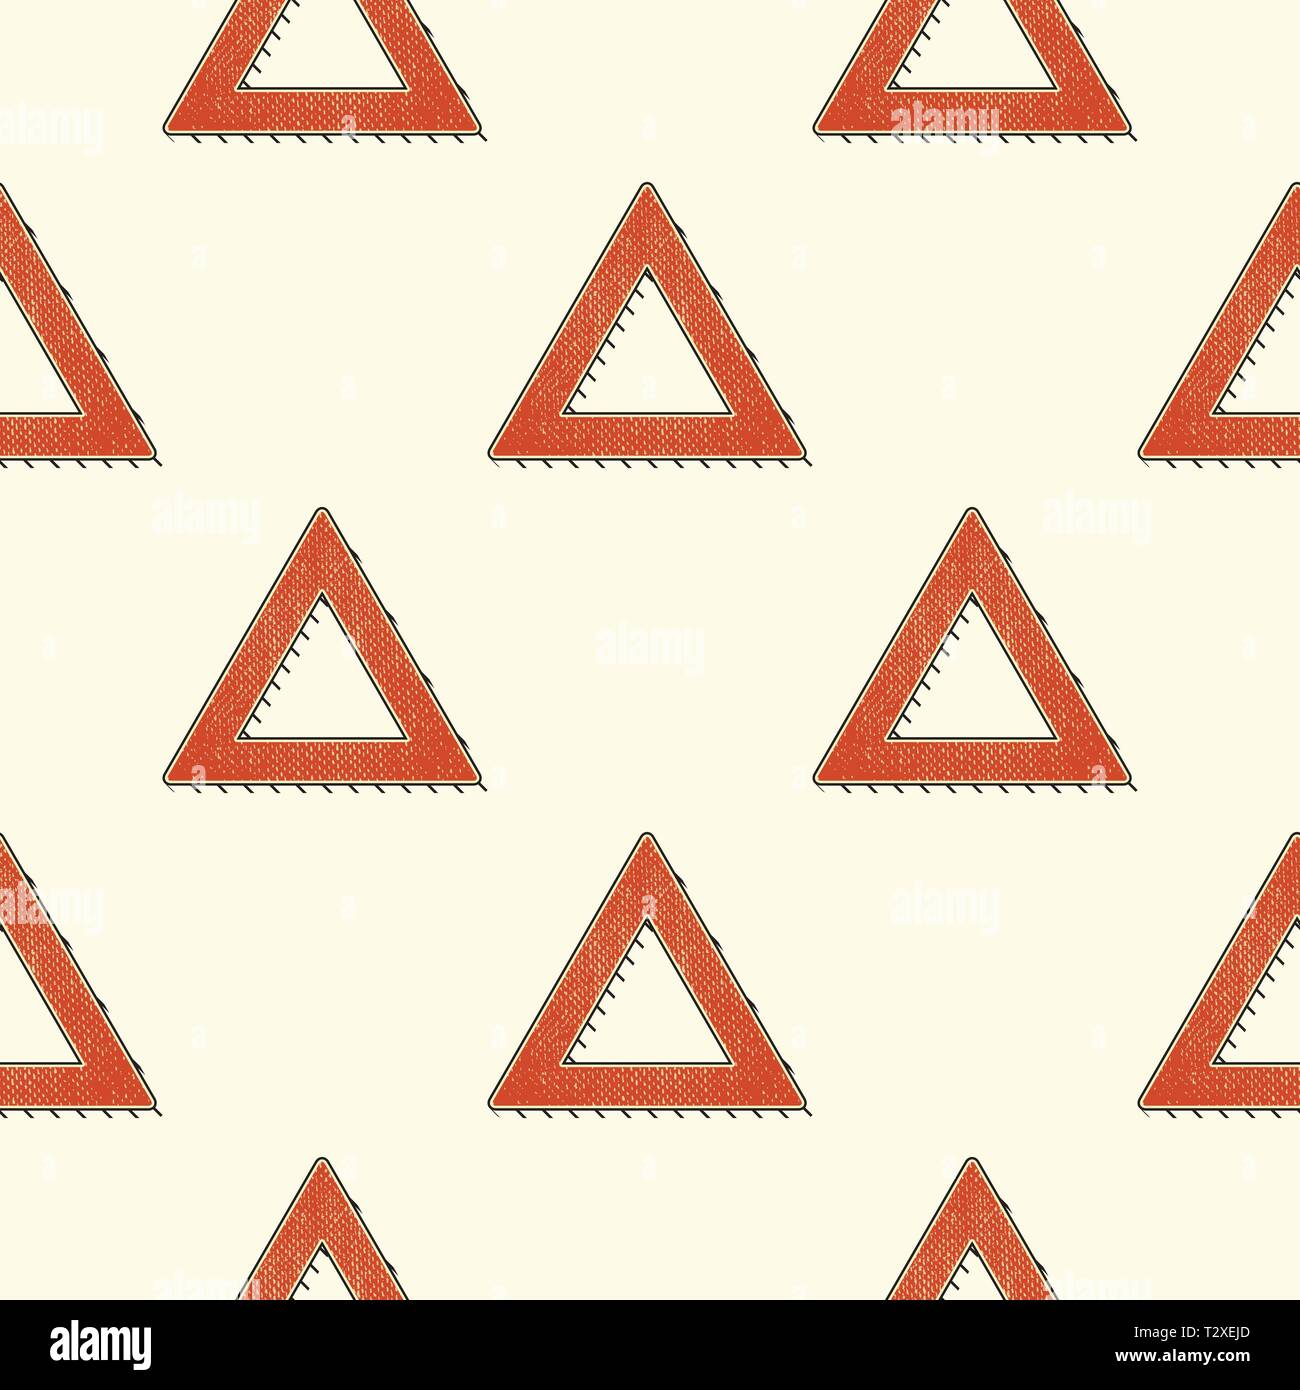 Retro triangles pattern  Abstract geometric background in